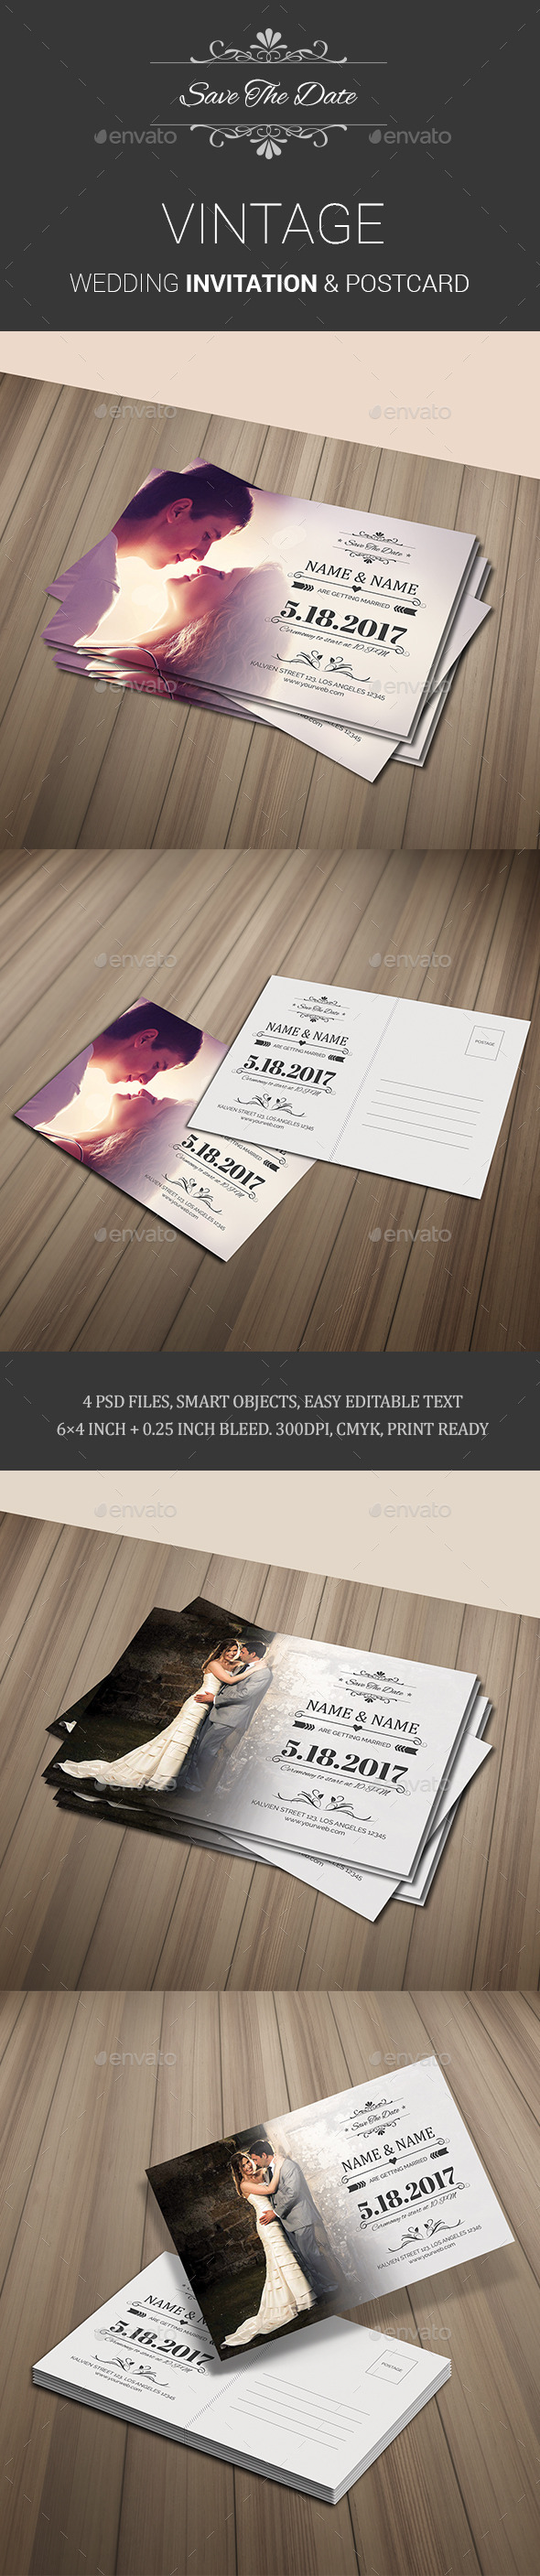 GraphicRiver Vintage Wedding Invitation & Postcard 11577362